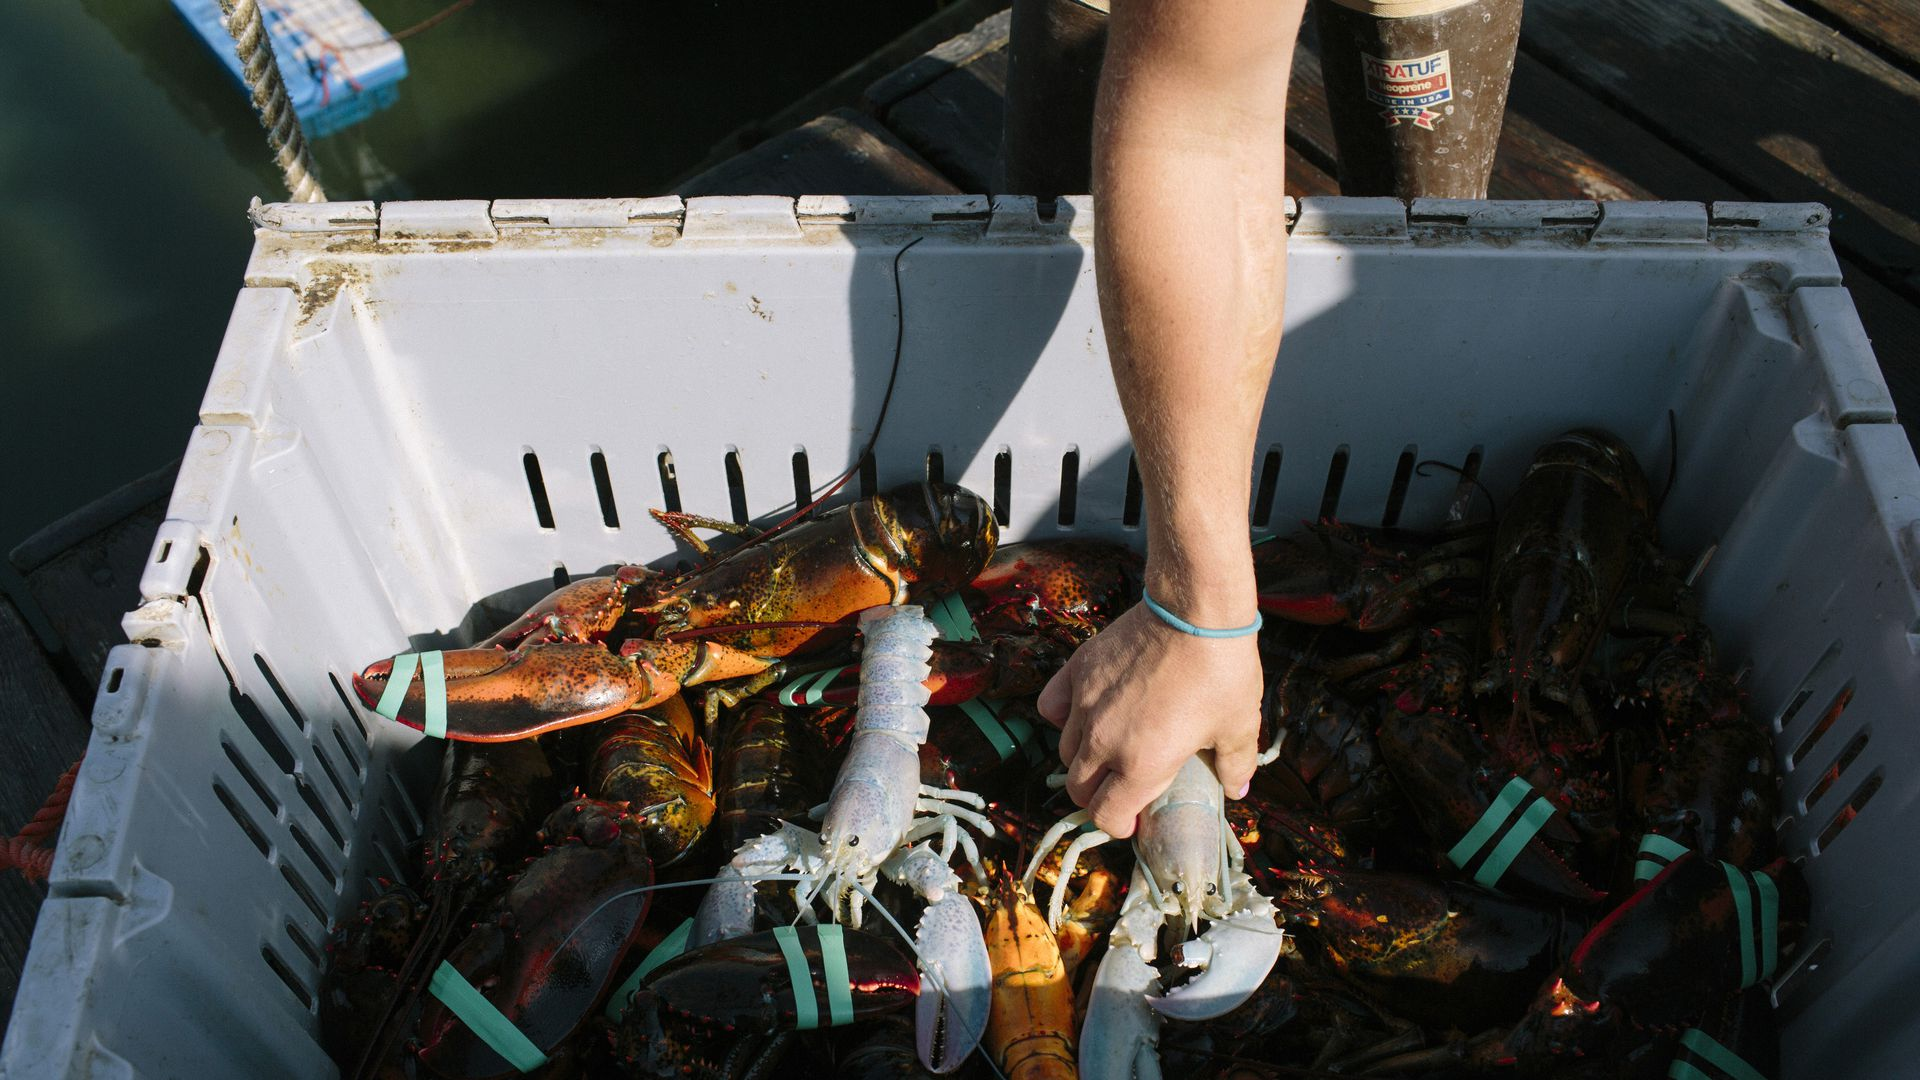 Trade war woes: Maine lobster exports to China down 84%